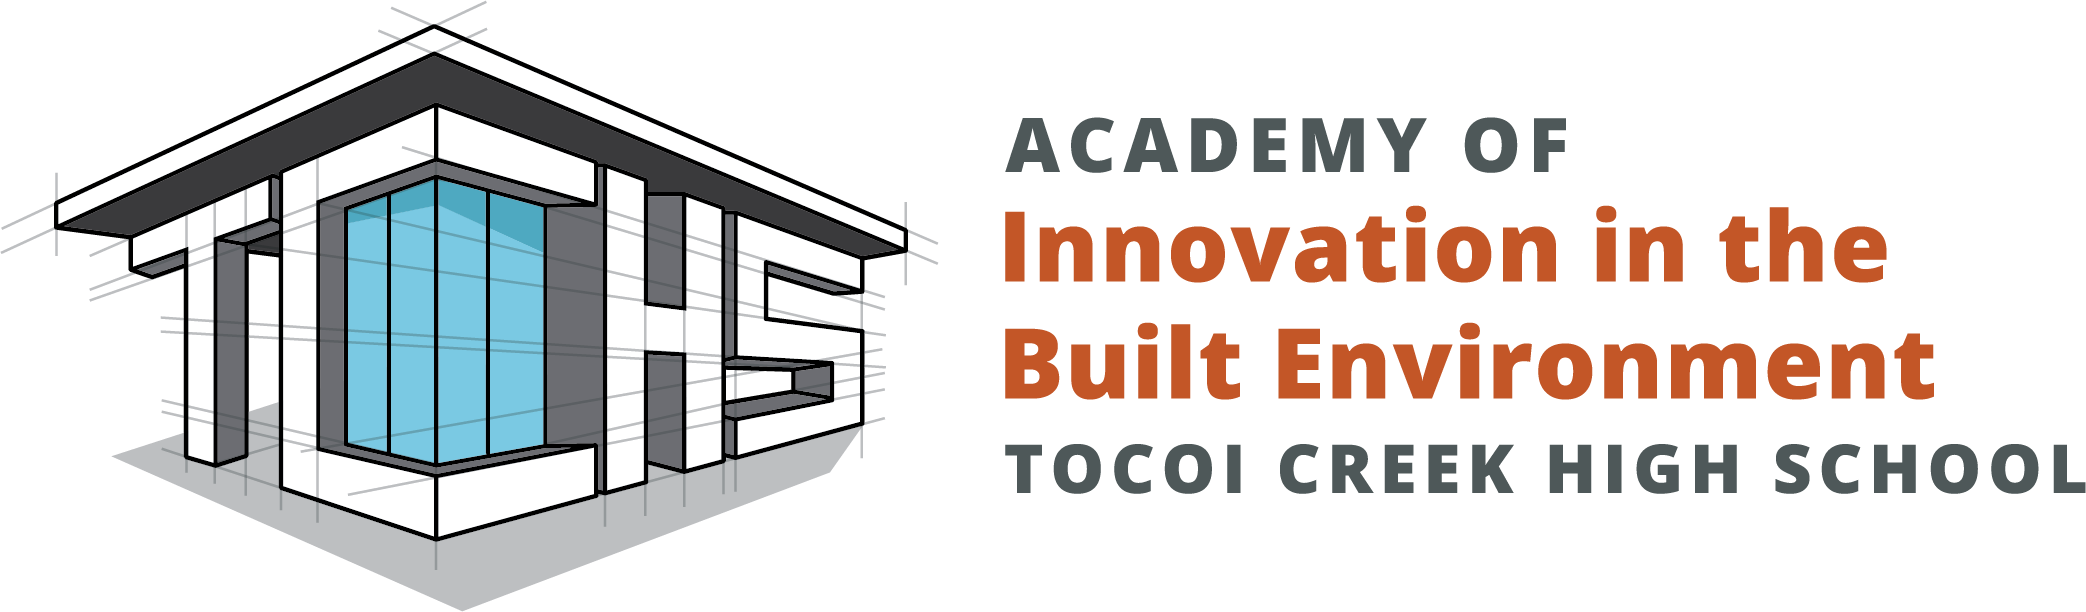 Academy of Innovation in the Built Environment